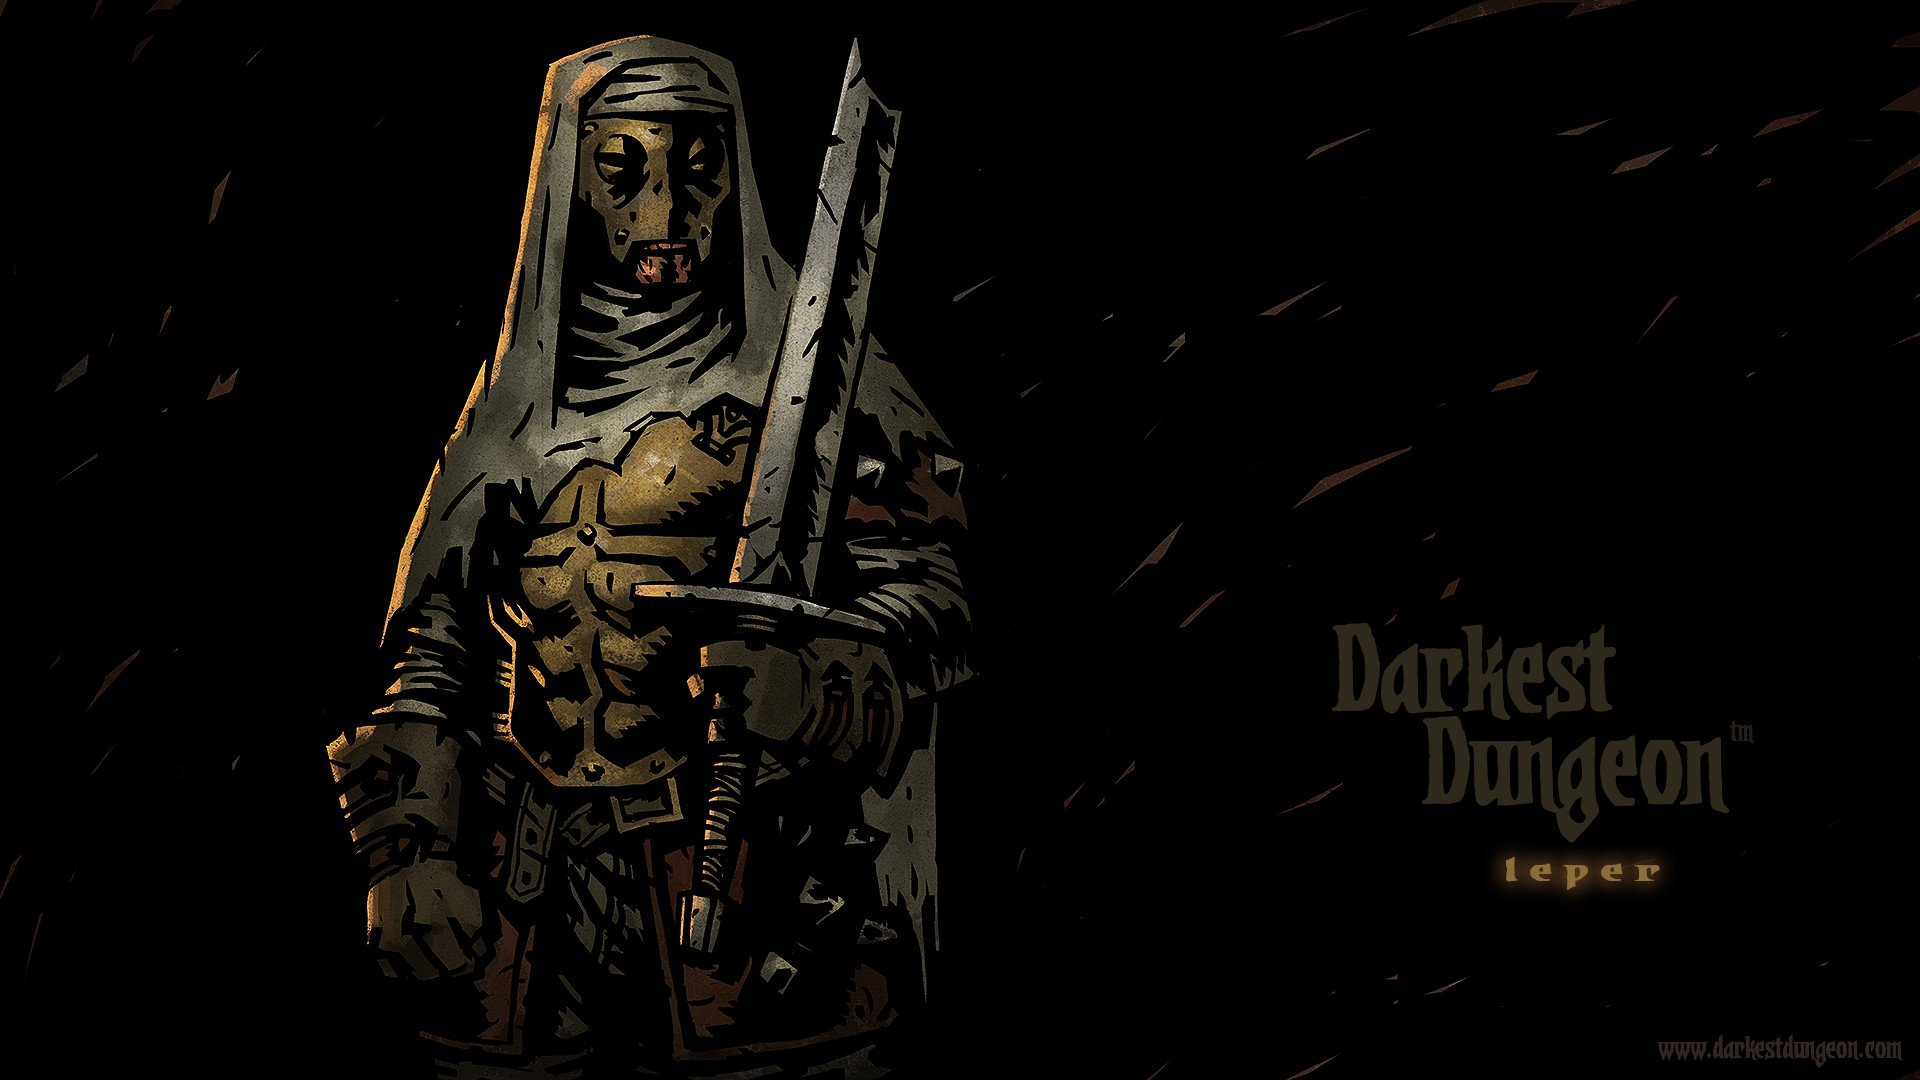 https://i11c.3djuegos.com/juegos/10684/darkest_dungeon/fotos/set/darkest_dungeon-2461923.jpg